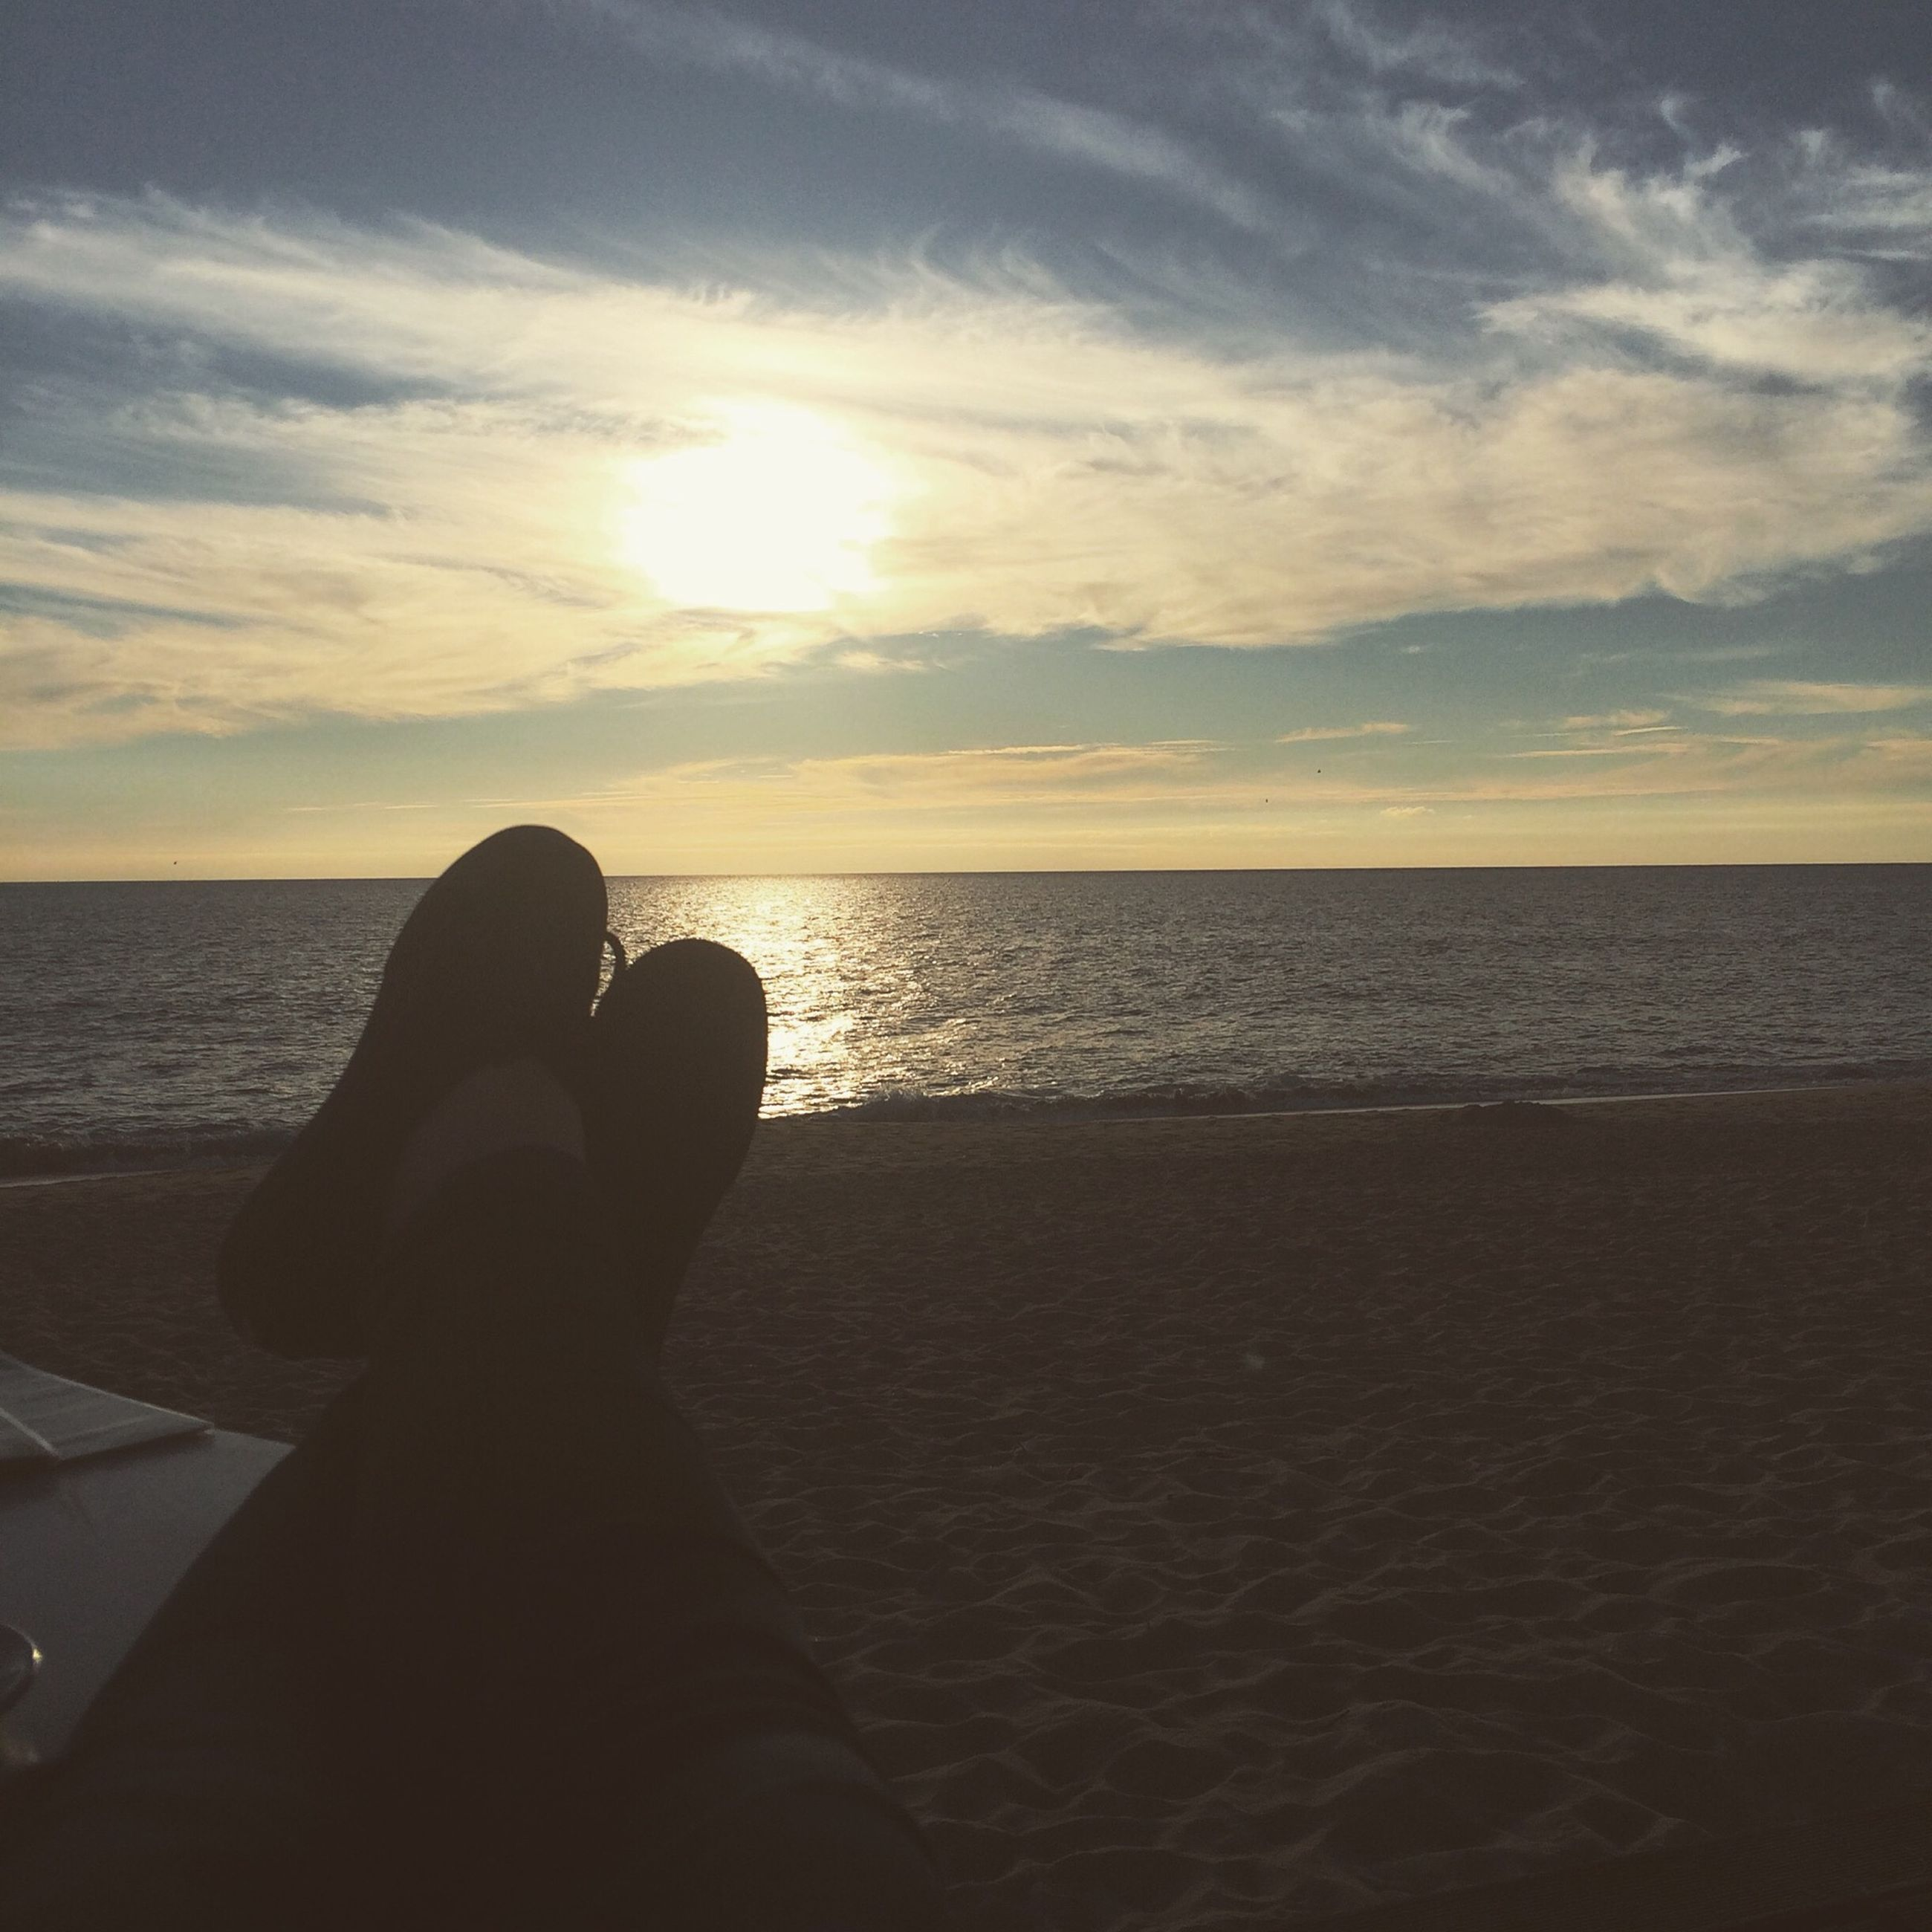 sea, water, horizon over water, sky, sunset, beach, scenics, tranquility, tranquil scene, beauty in nature, silhouette, lifestyles, leisure activity, cloud - sky, personal perspective, nature, unrecognizable person, relaxation